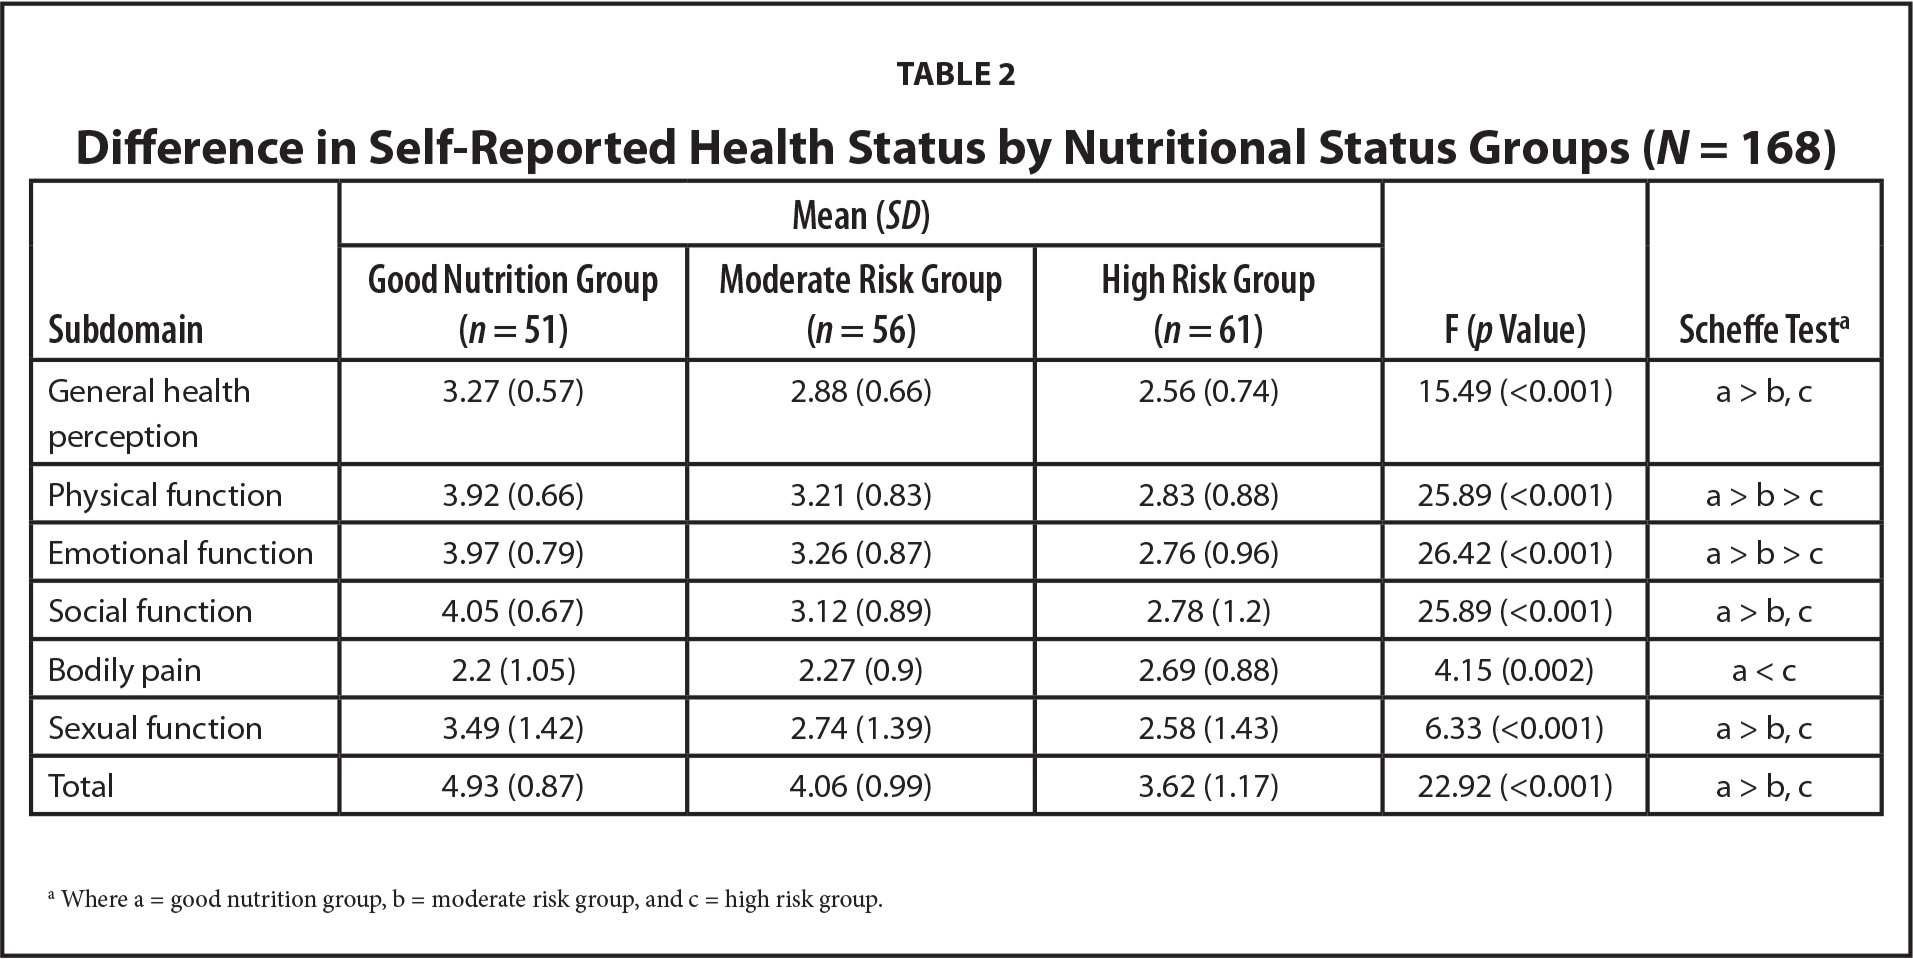 Difference in Self-Reported Health Status by Nutritional Status Groups (N = 168)